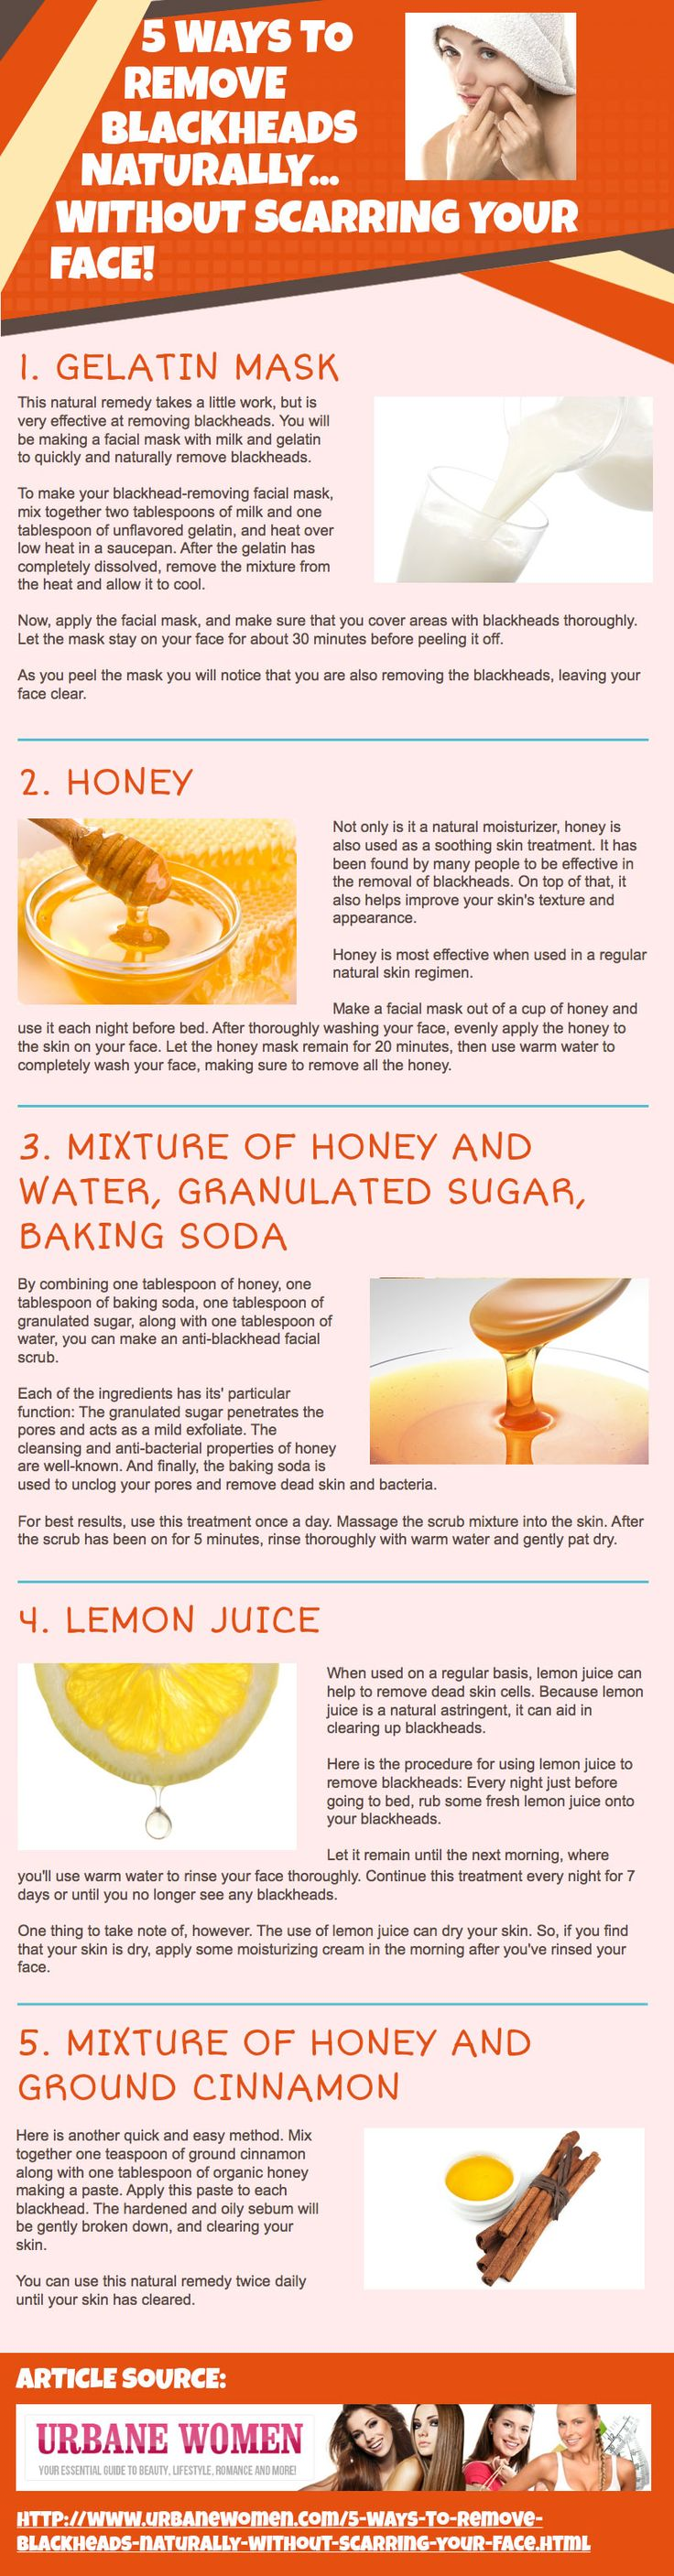 5waystoremoveblackheadsnaturallywithoutscarringyourface-infographic.jpg 800×3,059 pixels